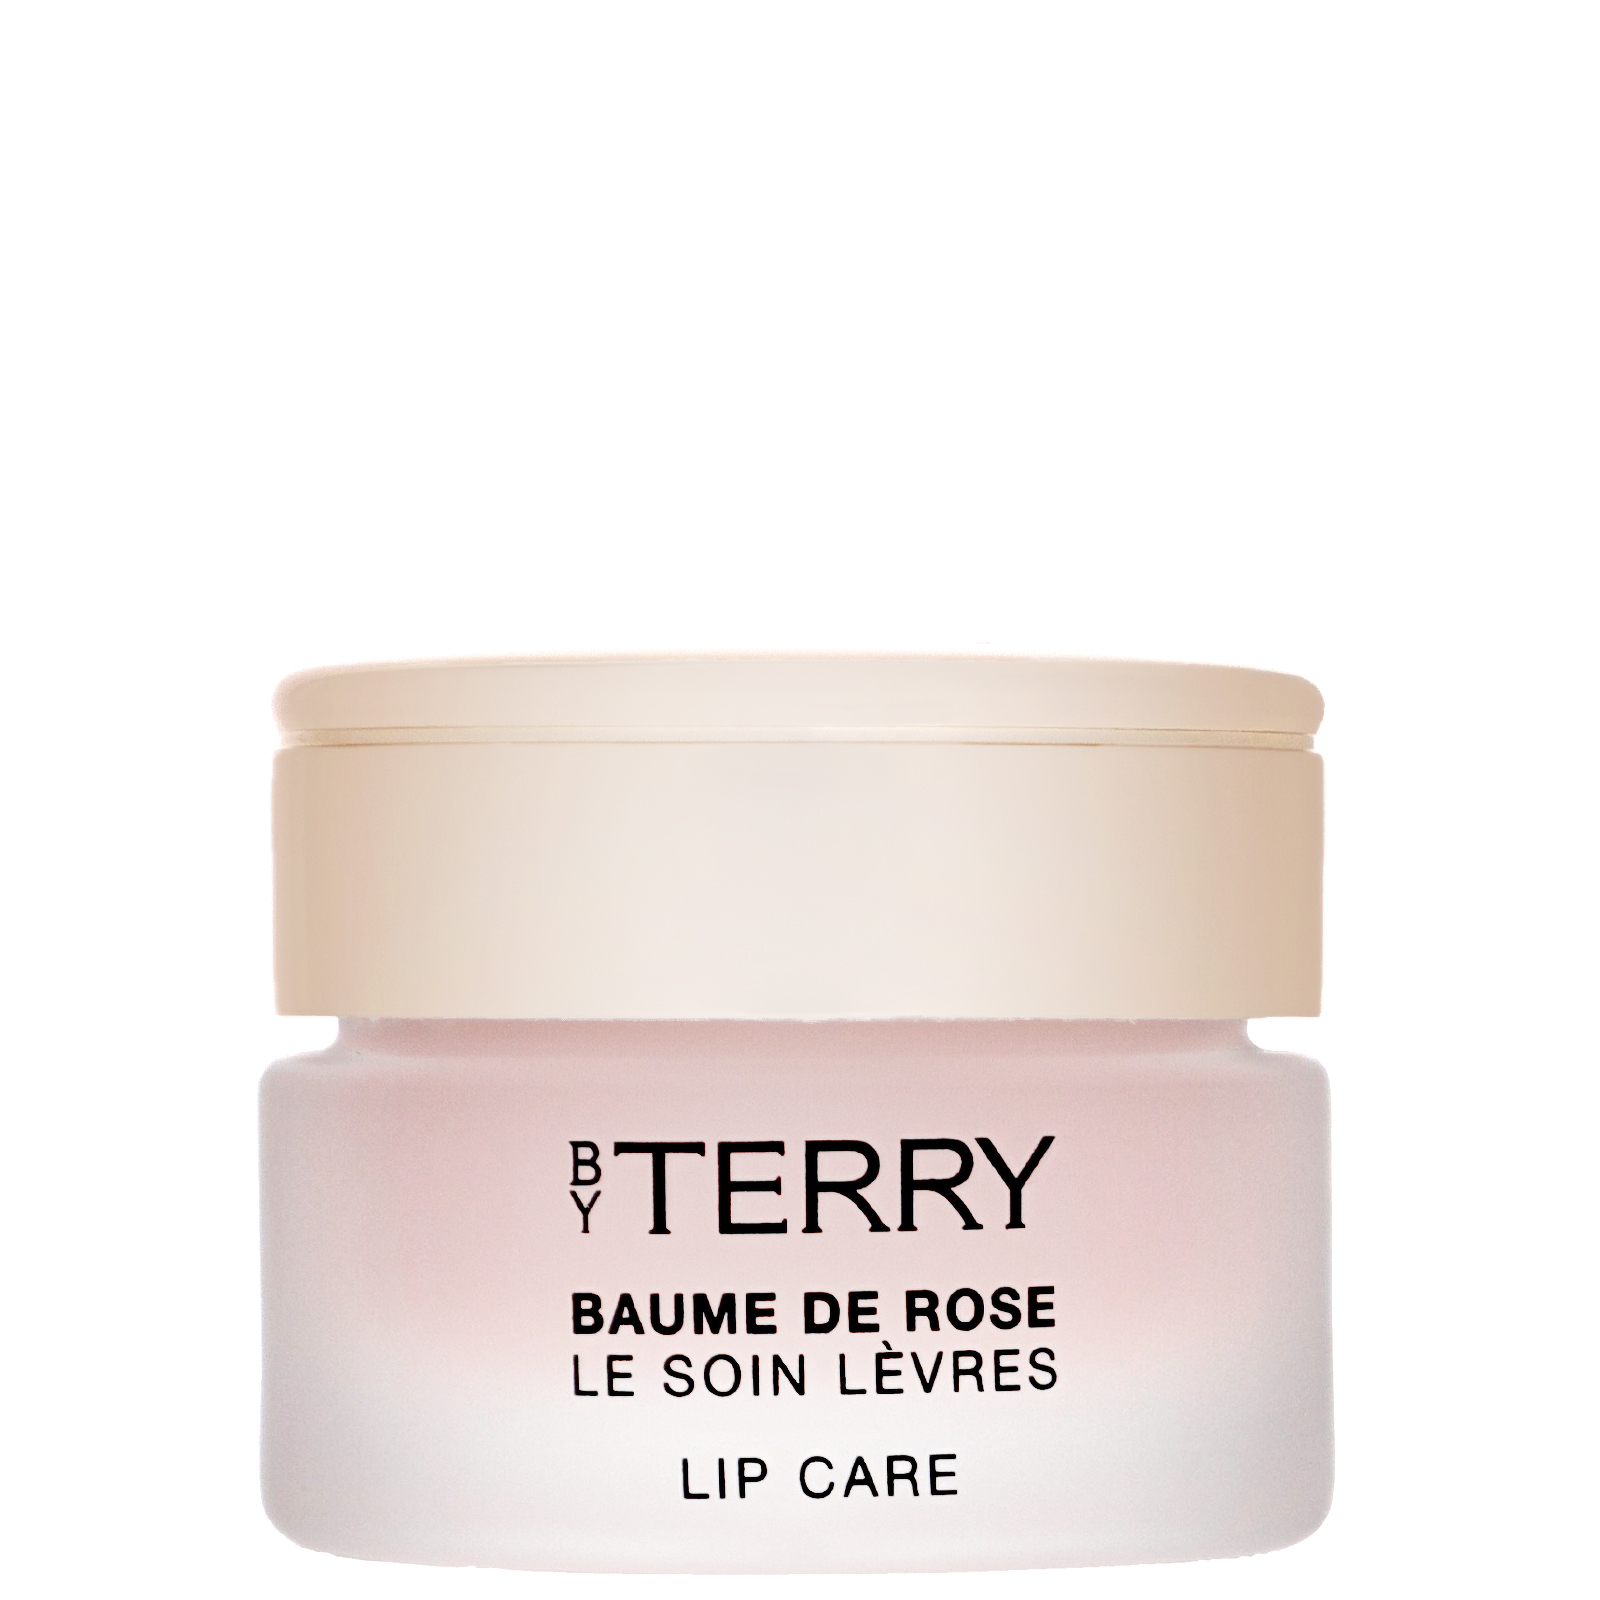 By Terry Baume De Rose Lip Care 10g